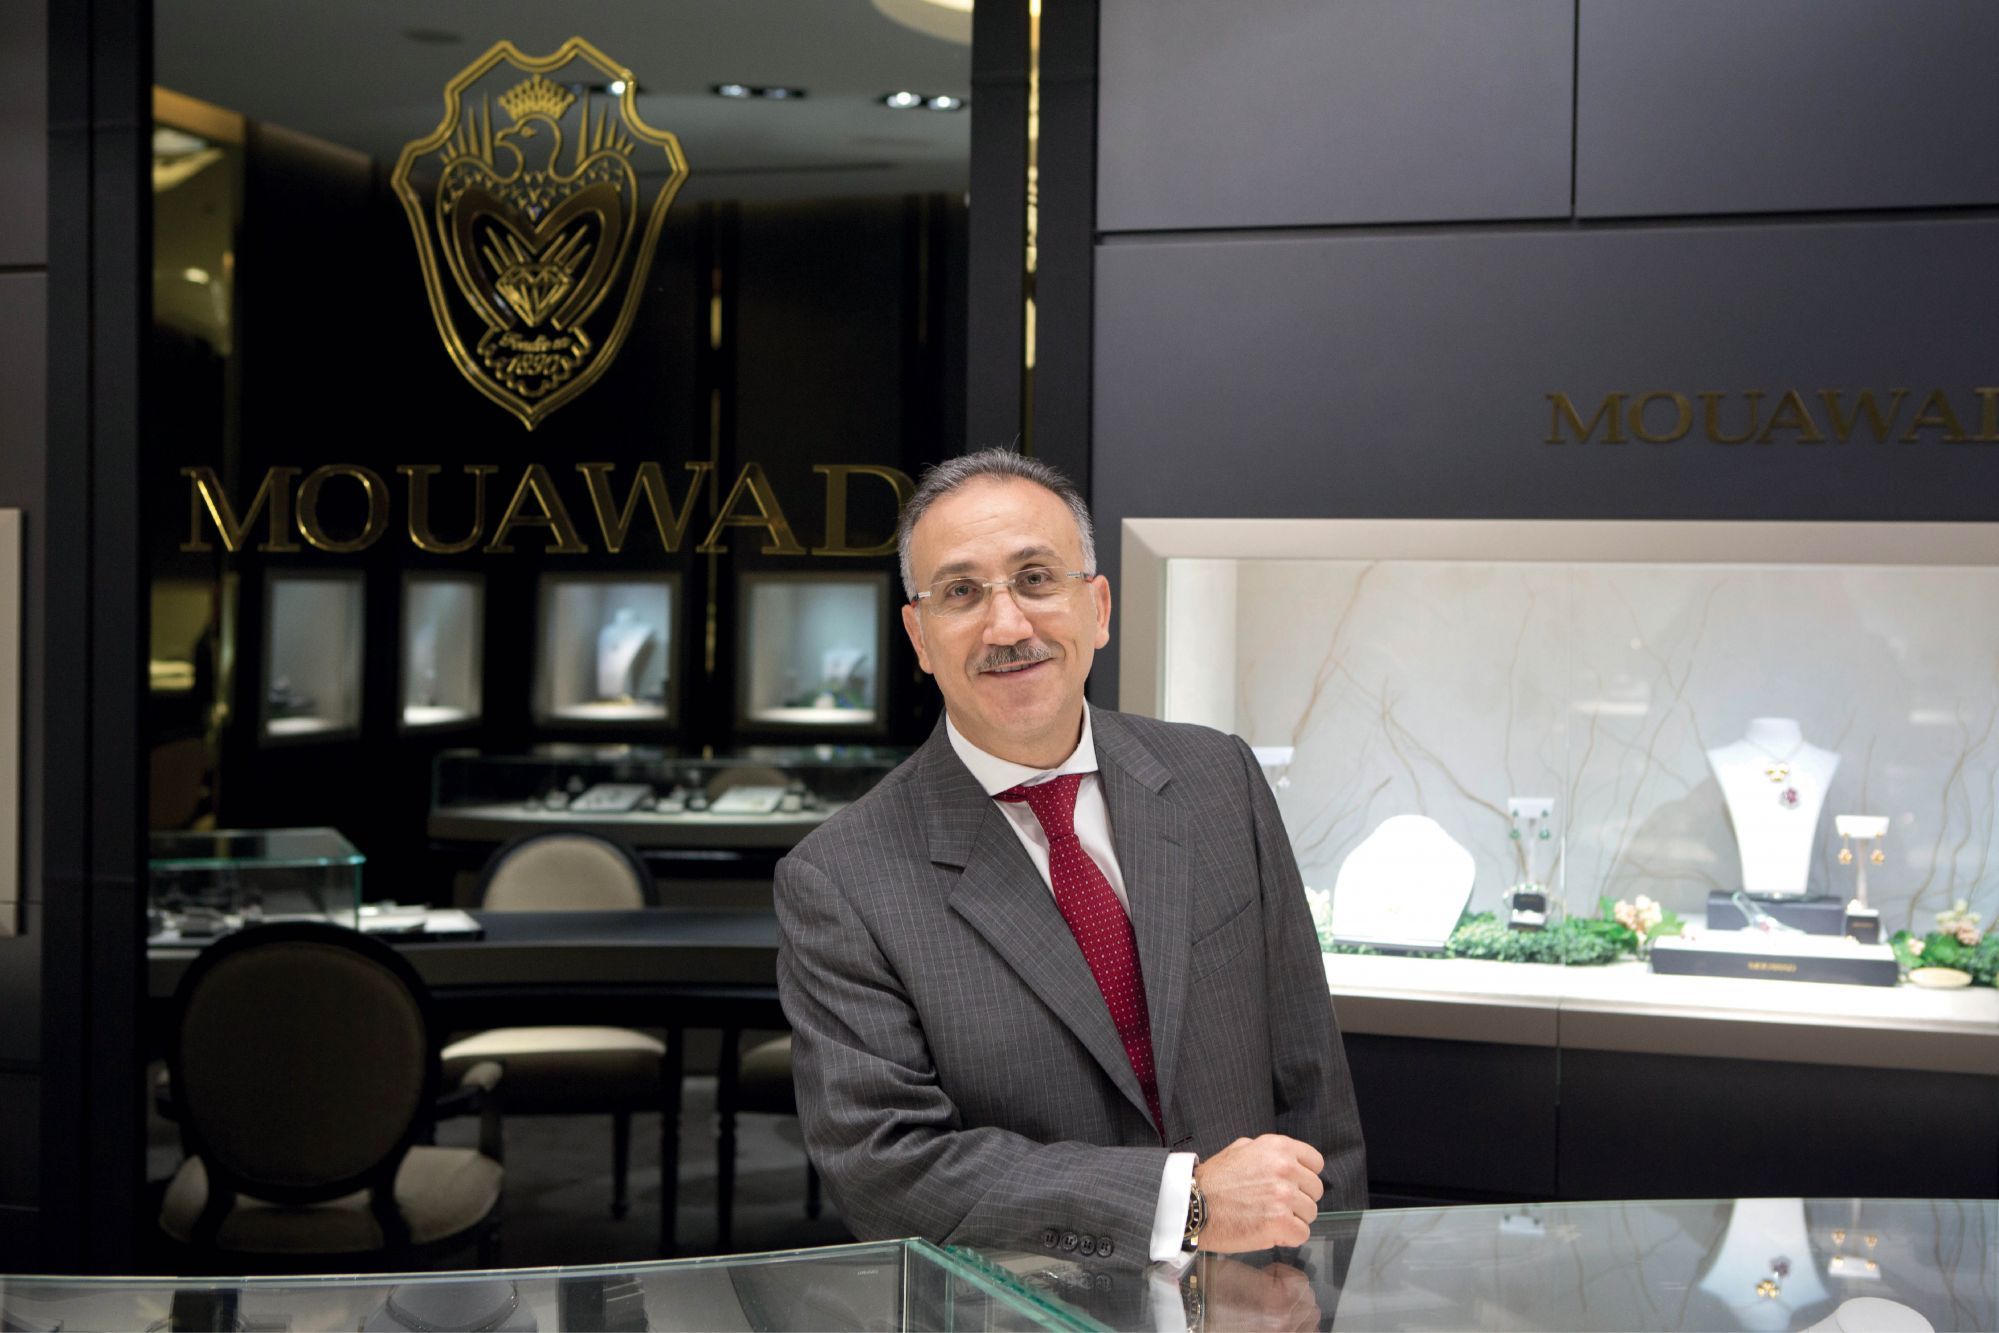 5 Minutes With... Managing Director of Mouawad, Jean Nasr